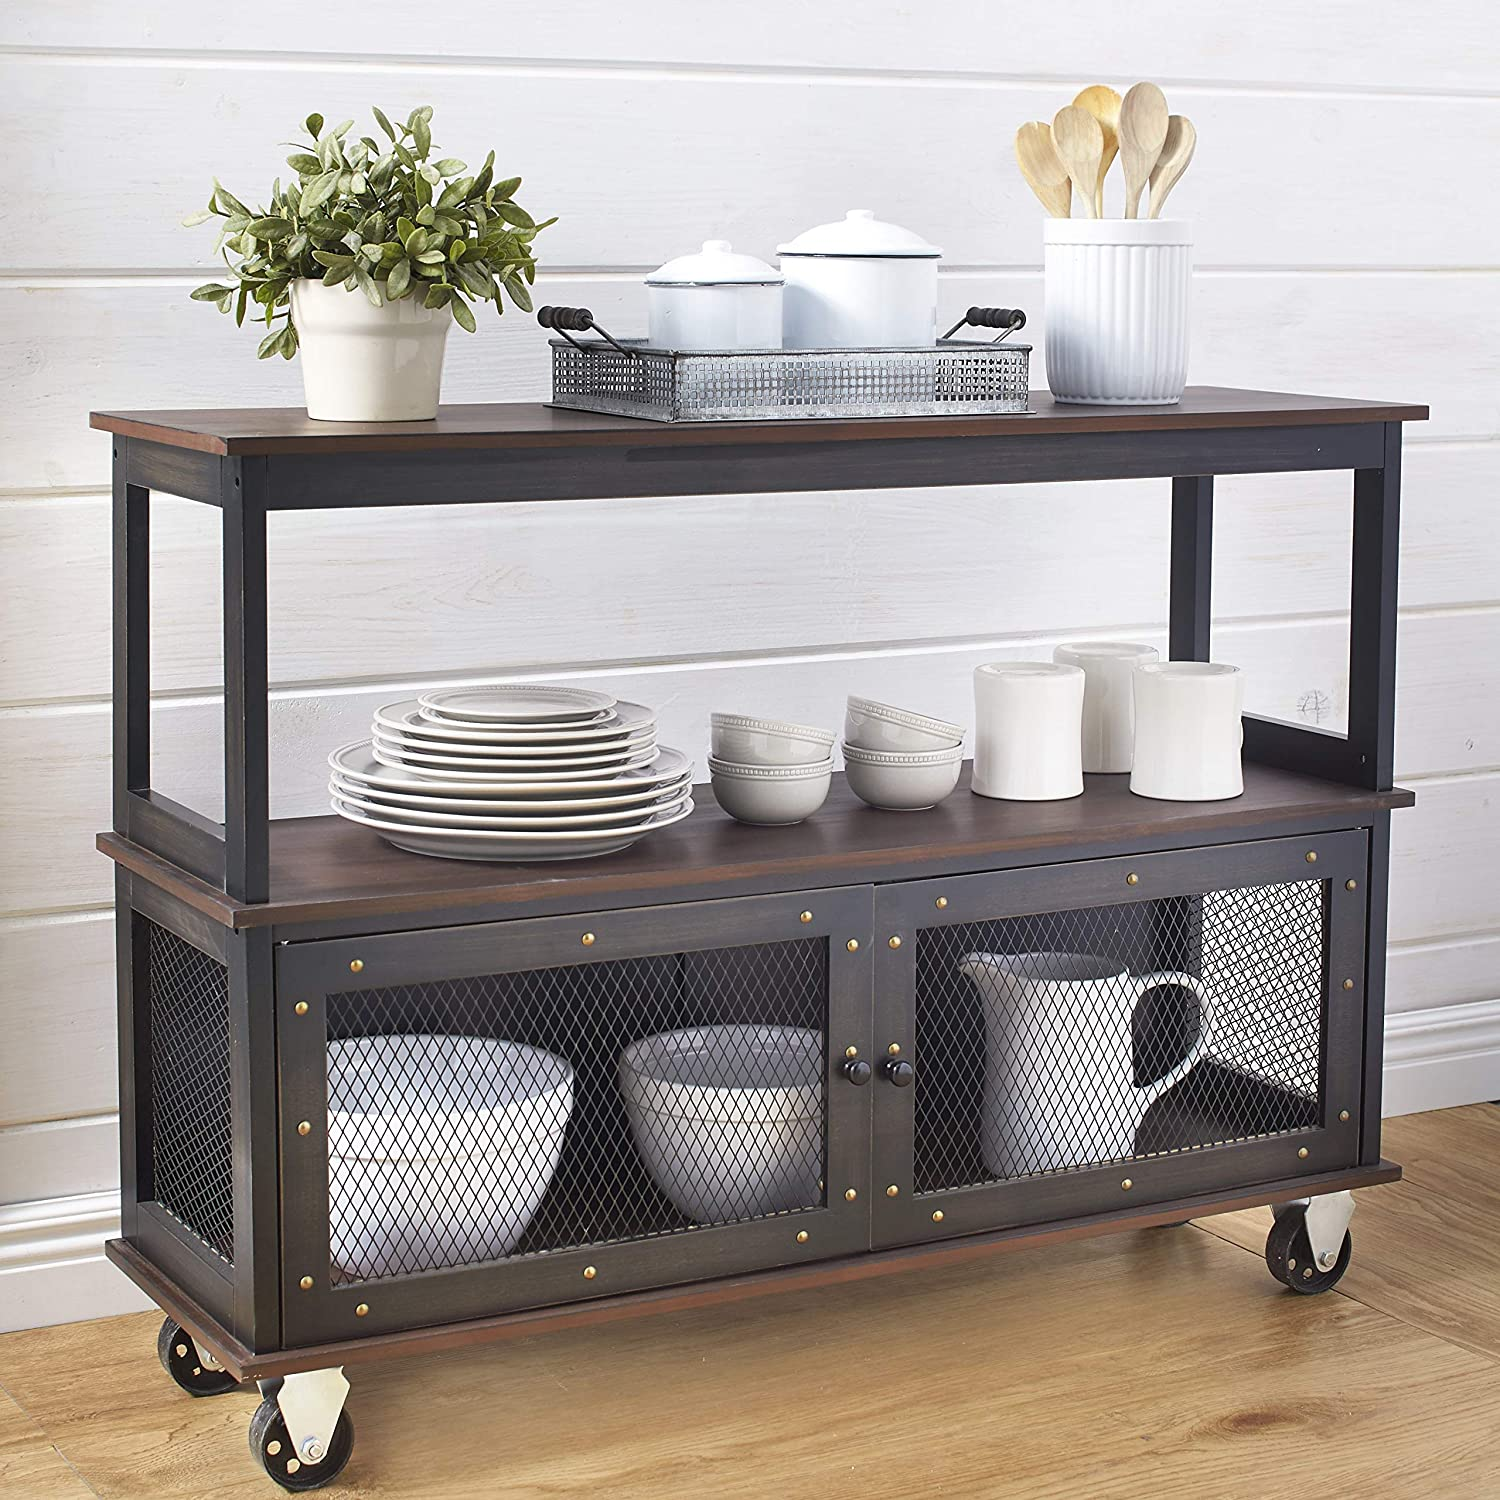 The Lakeside Collection Industrial-Style Buffet 3-Tier Portland Mall C Rolling Atlanta Mall